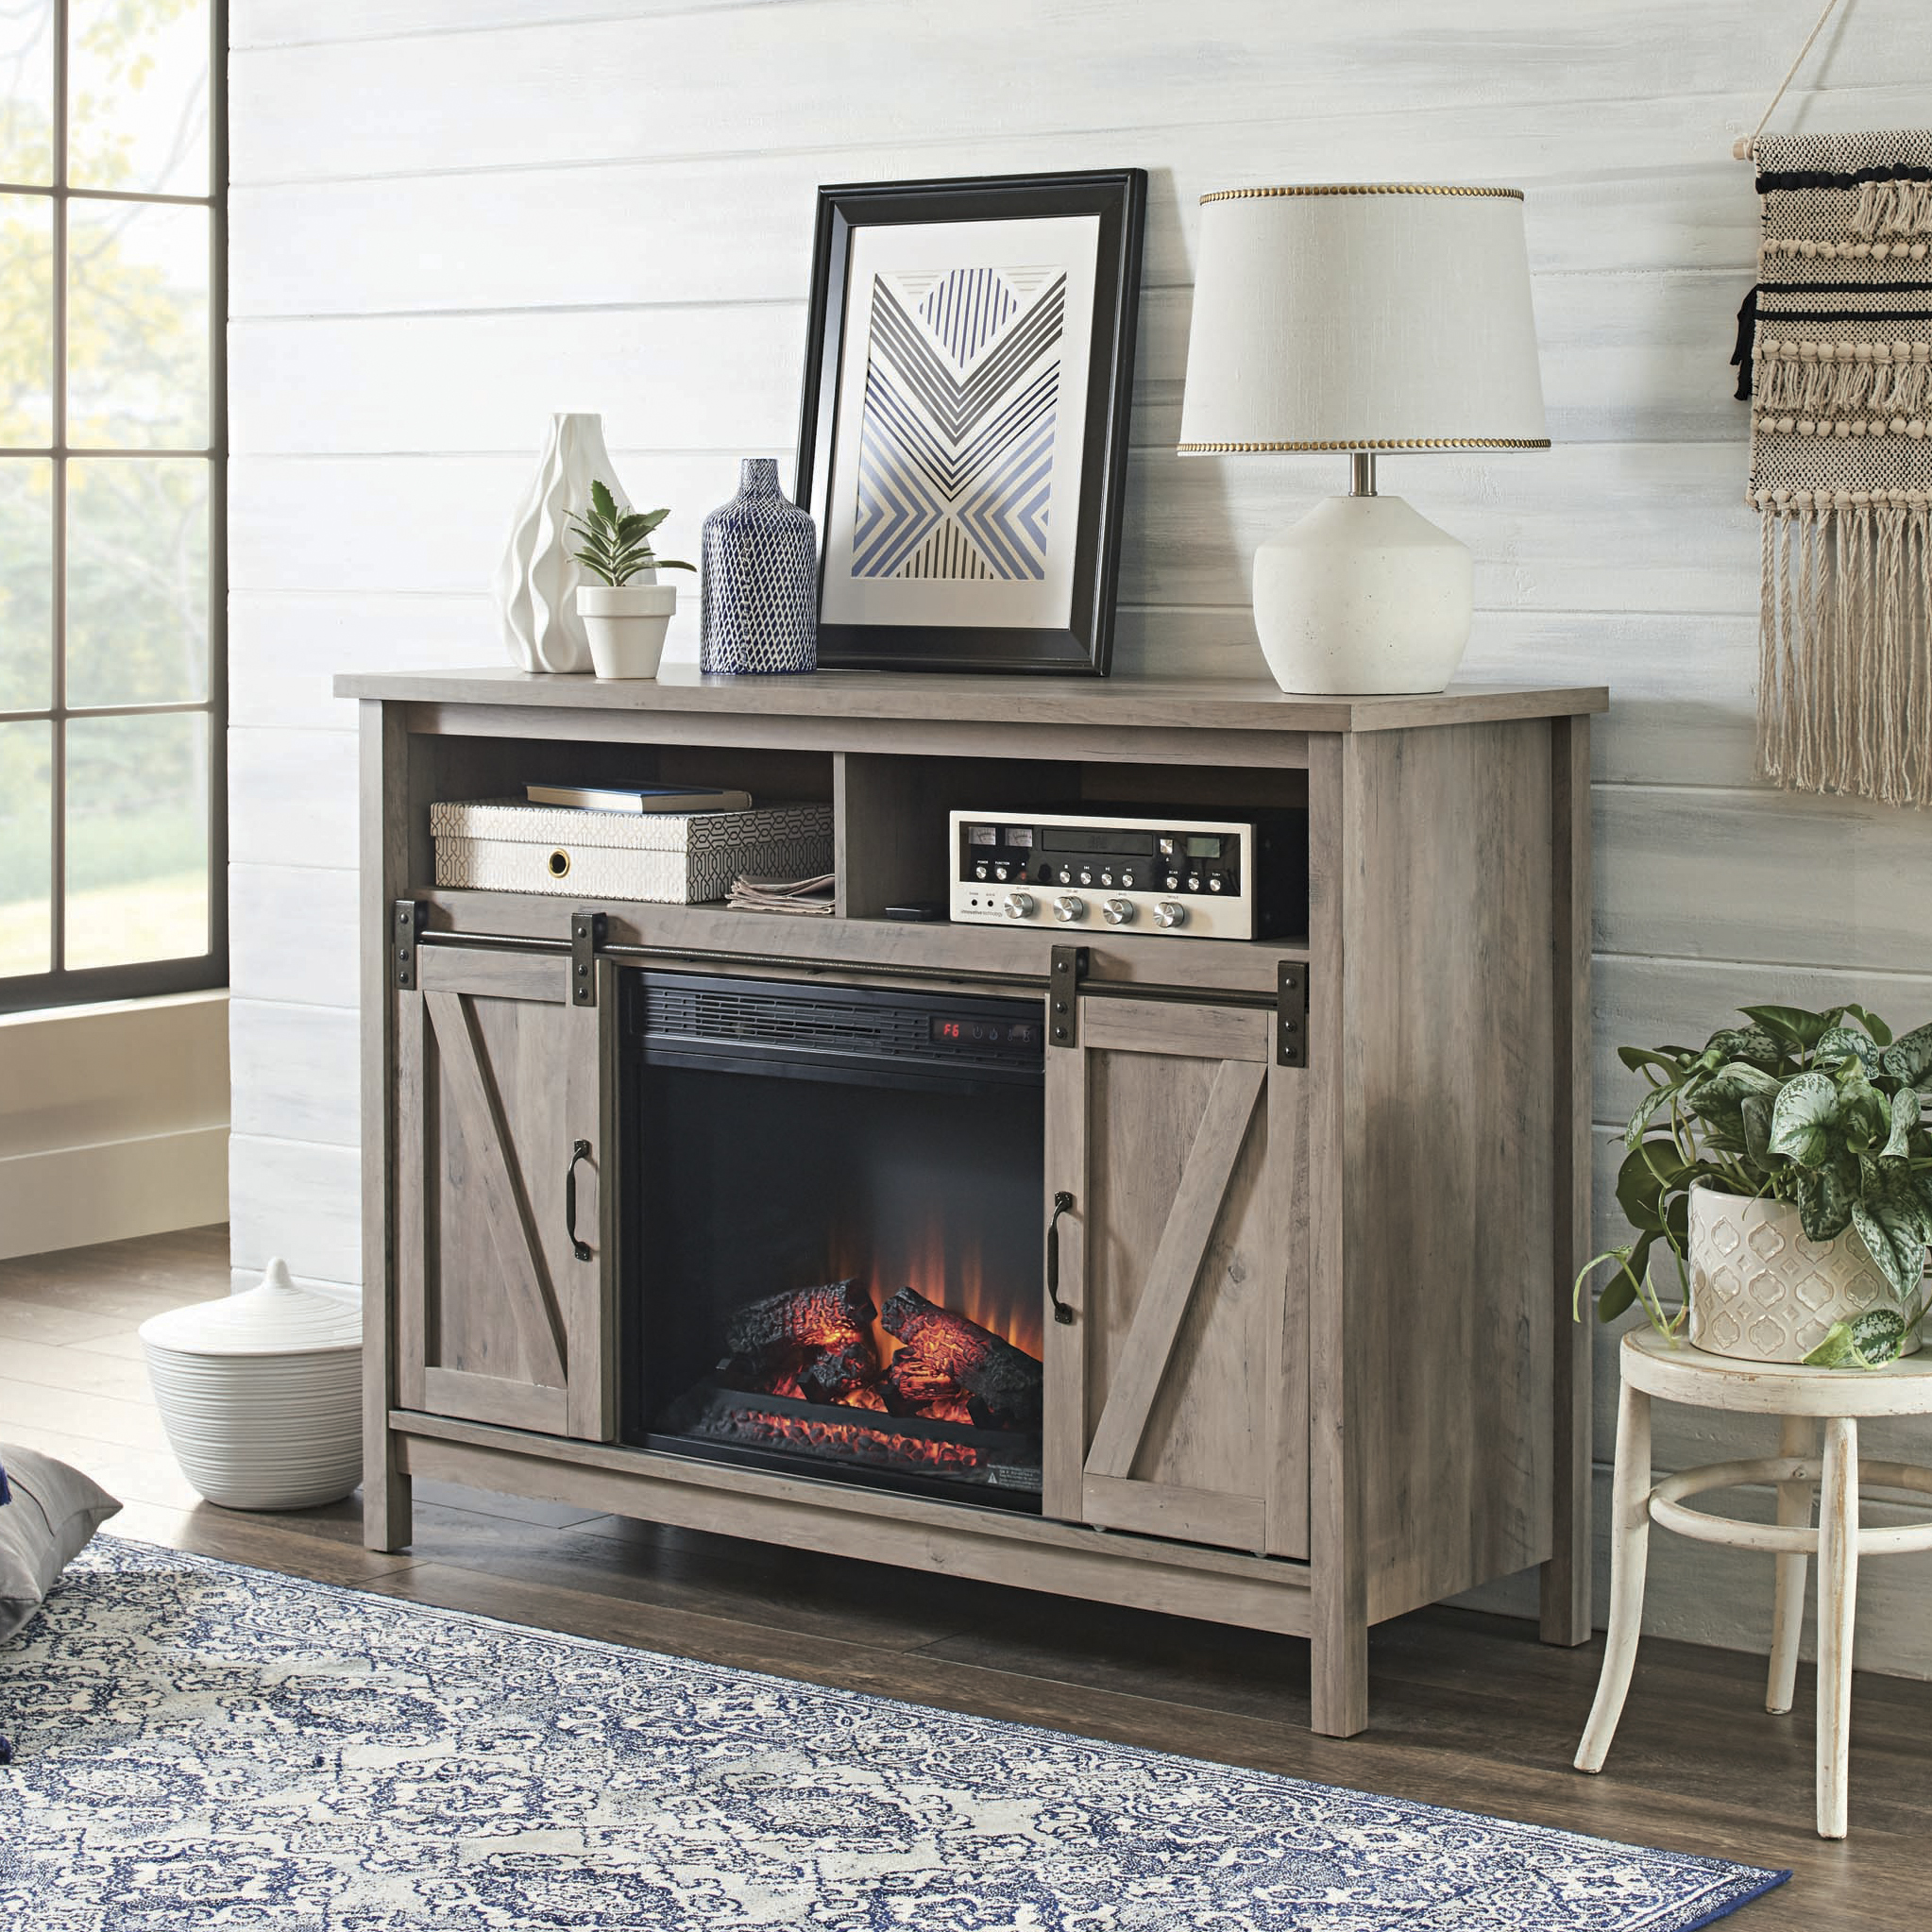 Better Homes & Gardens Modern Farmhouse Fireplace Credenza for TVs up to  10